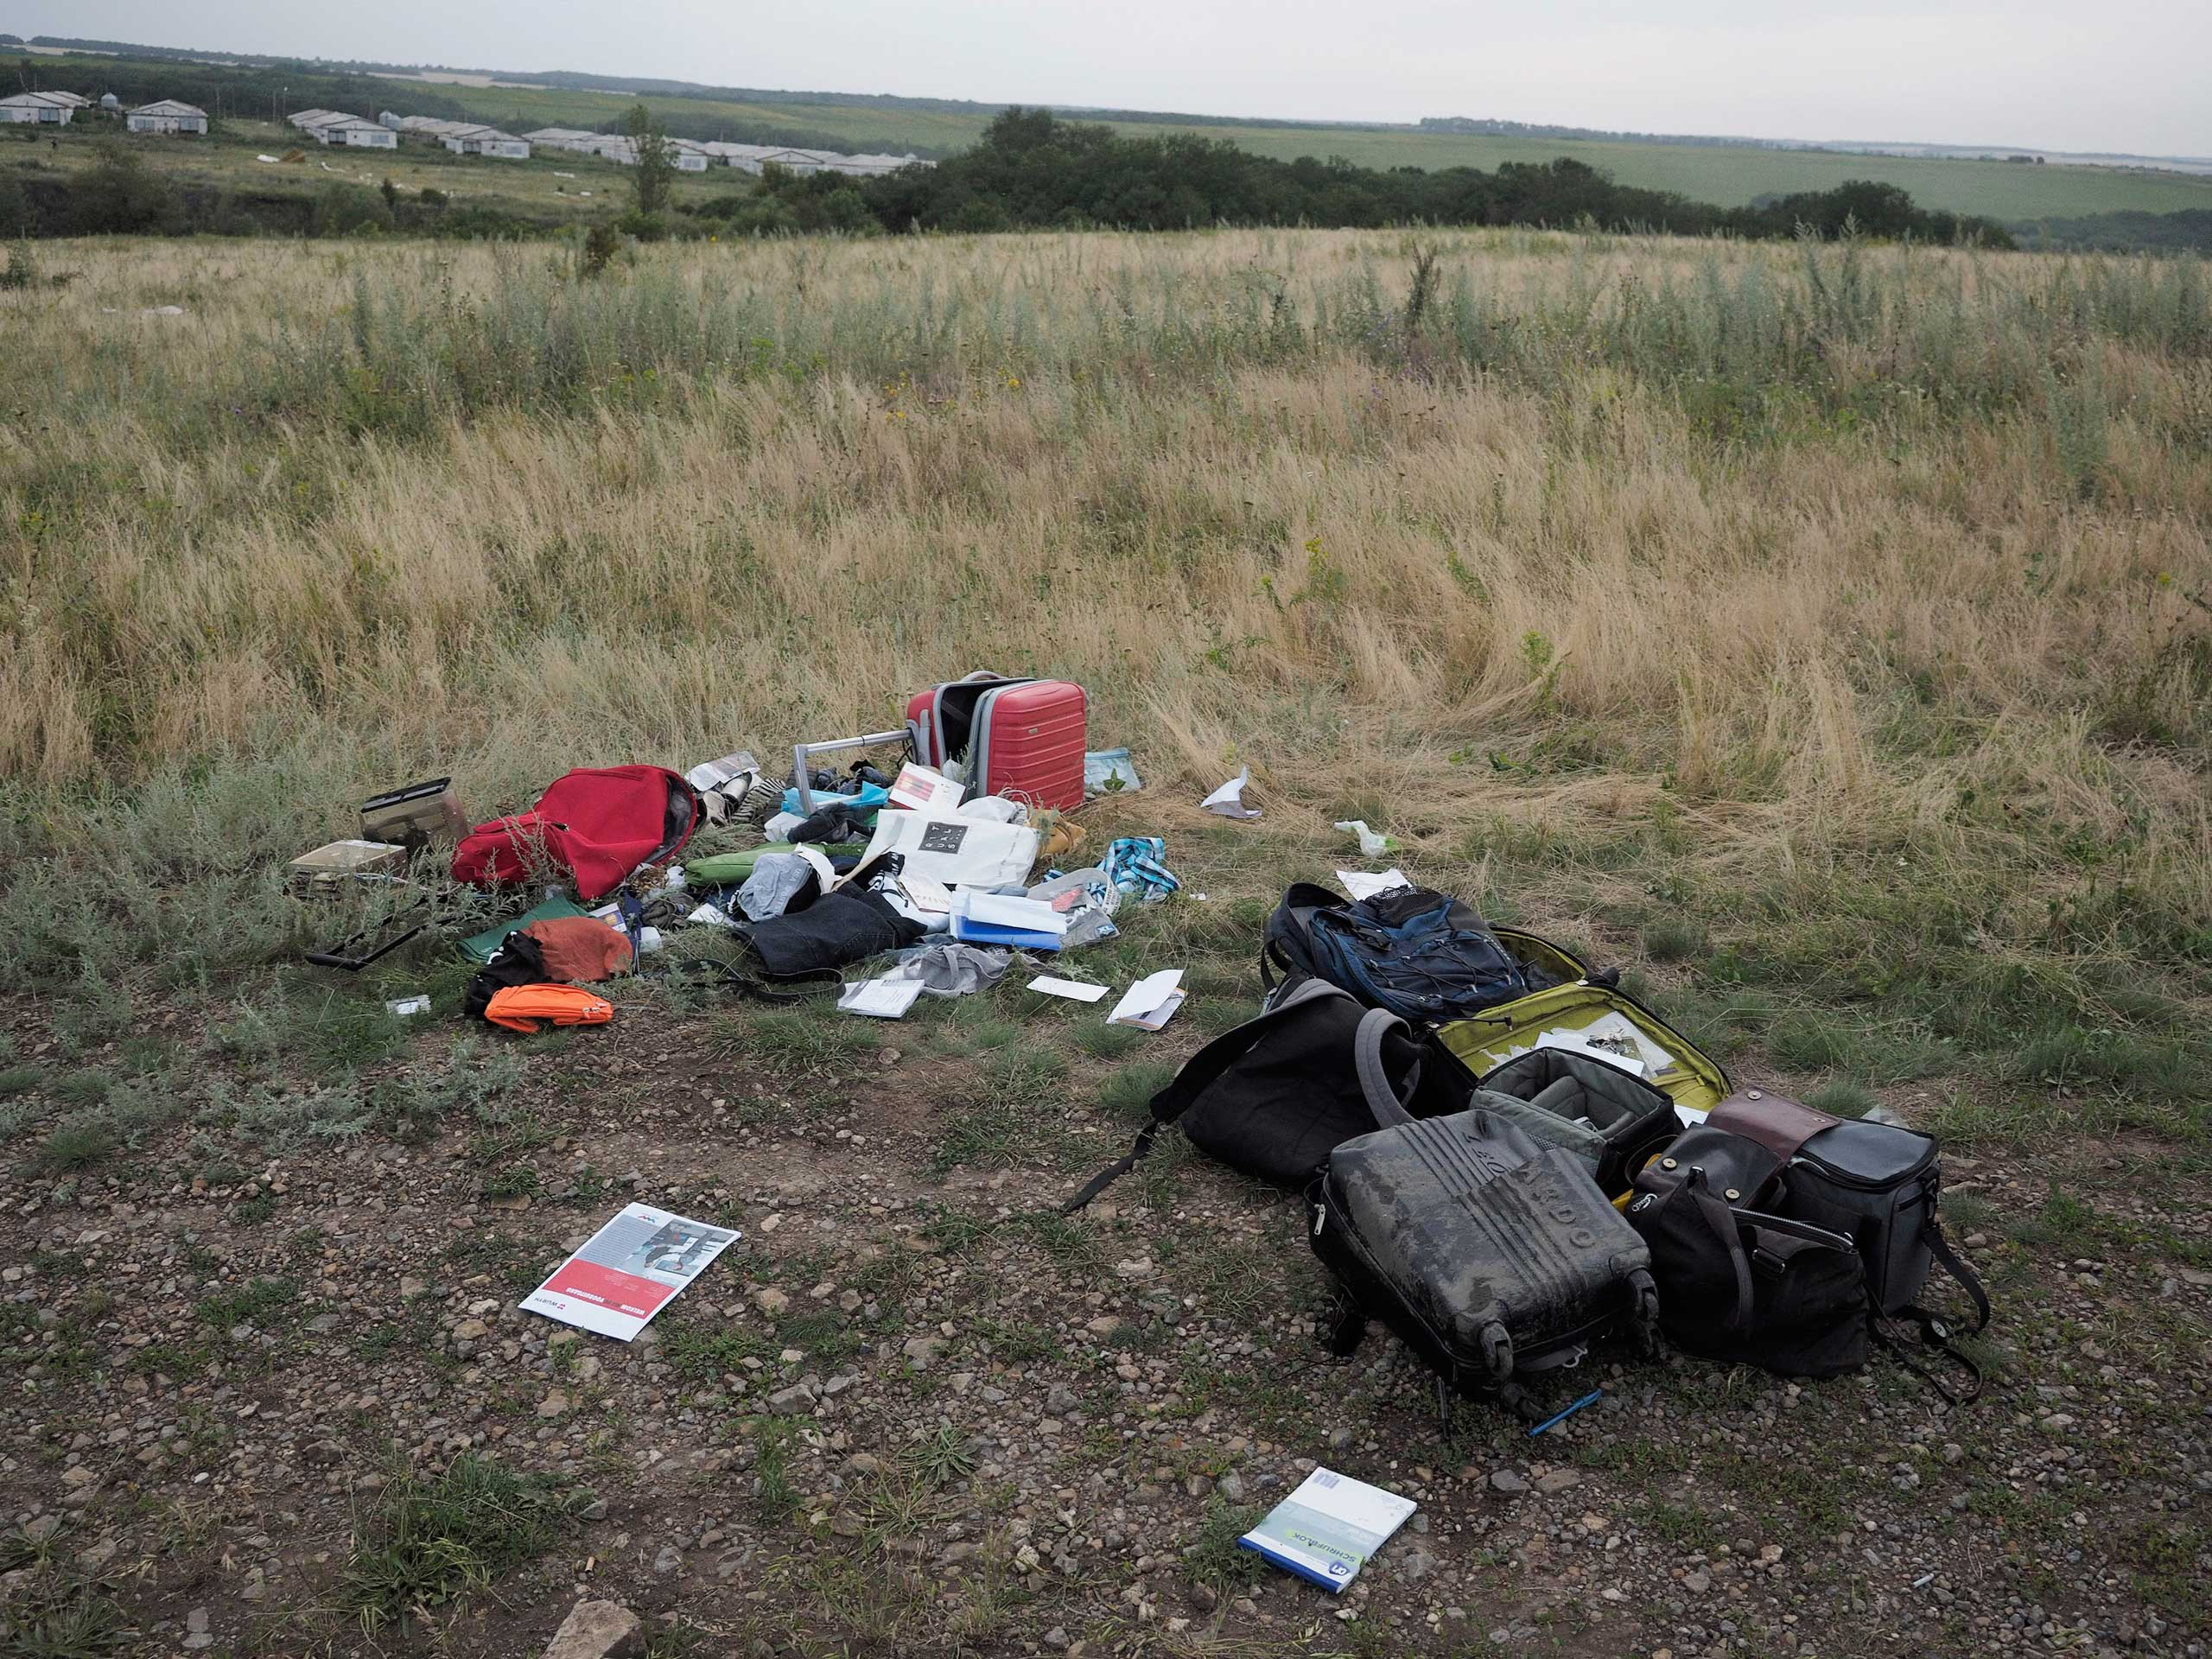 Luggage at the crash site of the Malaysian airliner reportedly carrying 298 people from Amsterdam to Kuala Lumpur, near the town of Shaktarsk, in rebel-held east Ukraine on July 17, 2014.